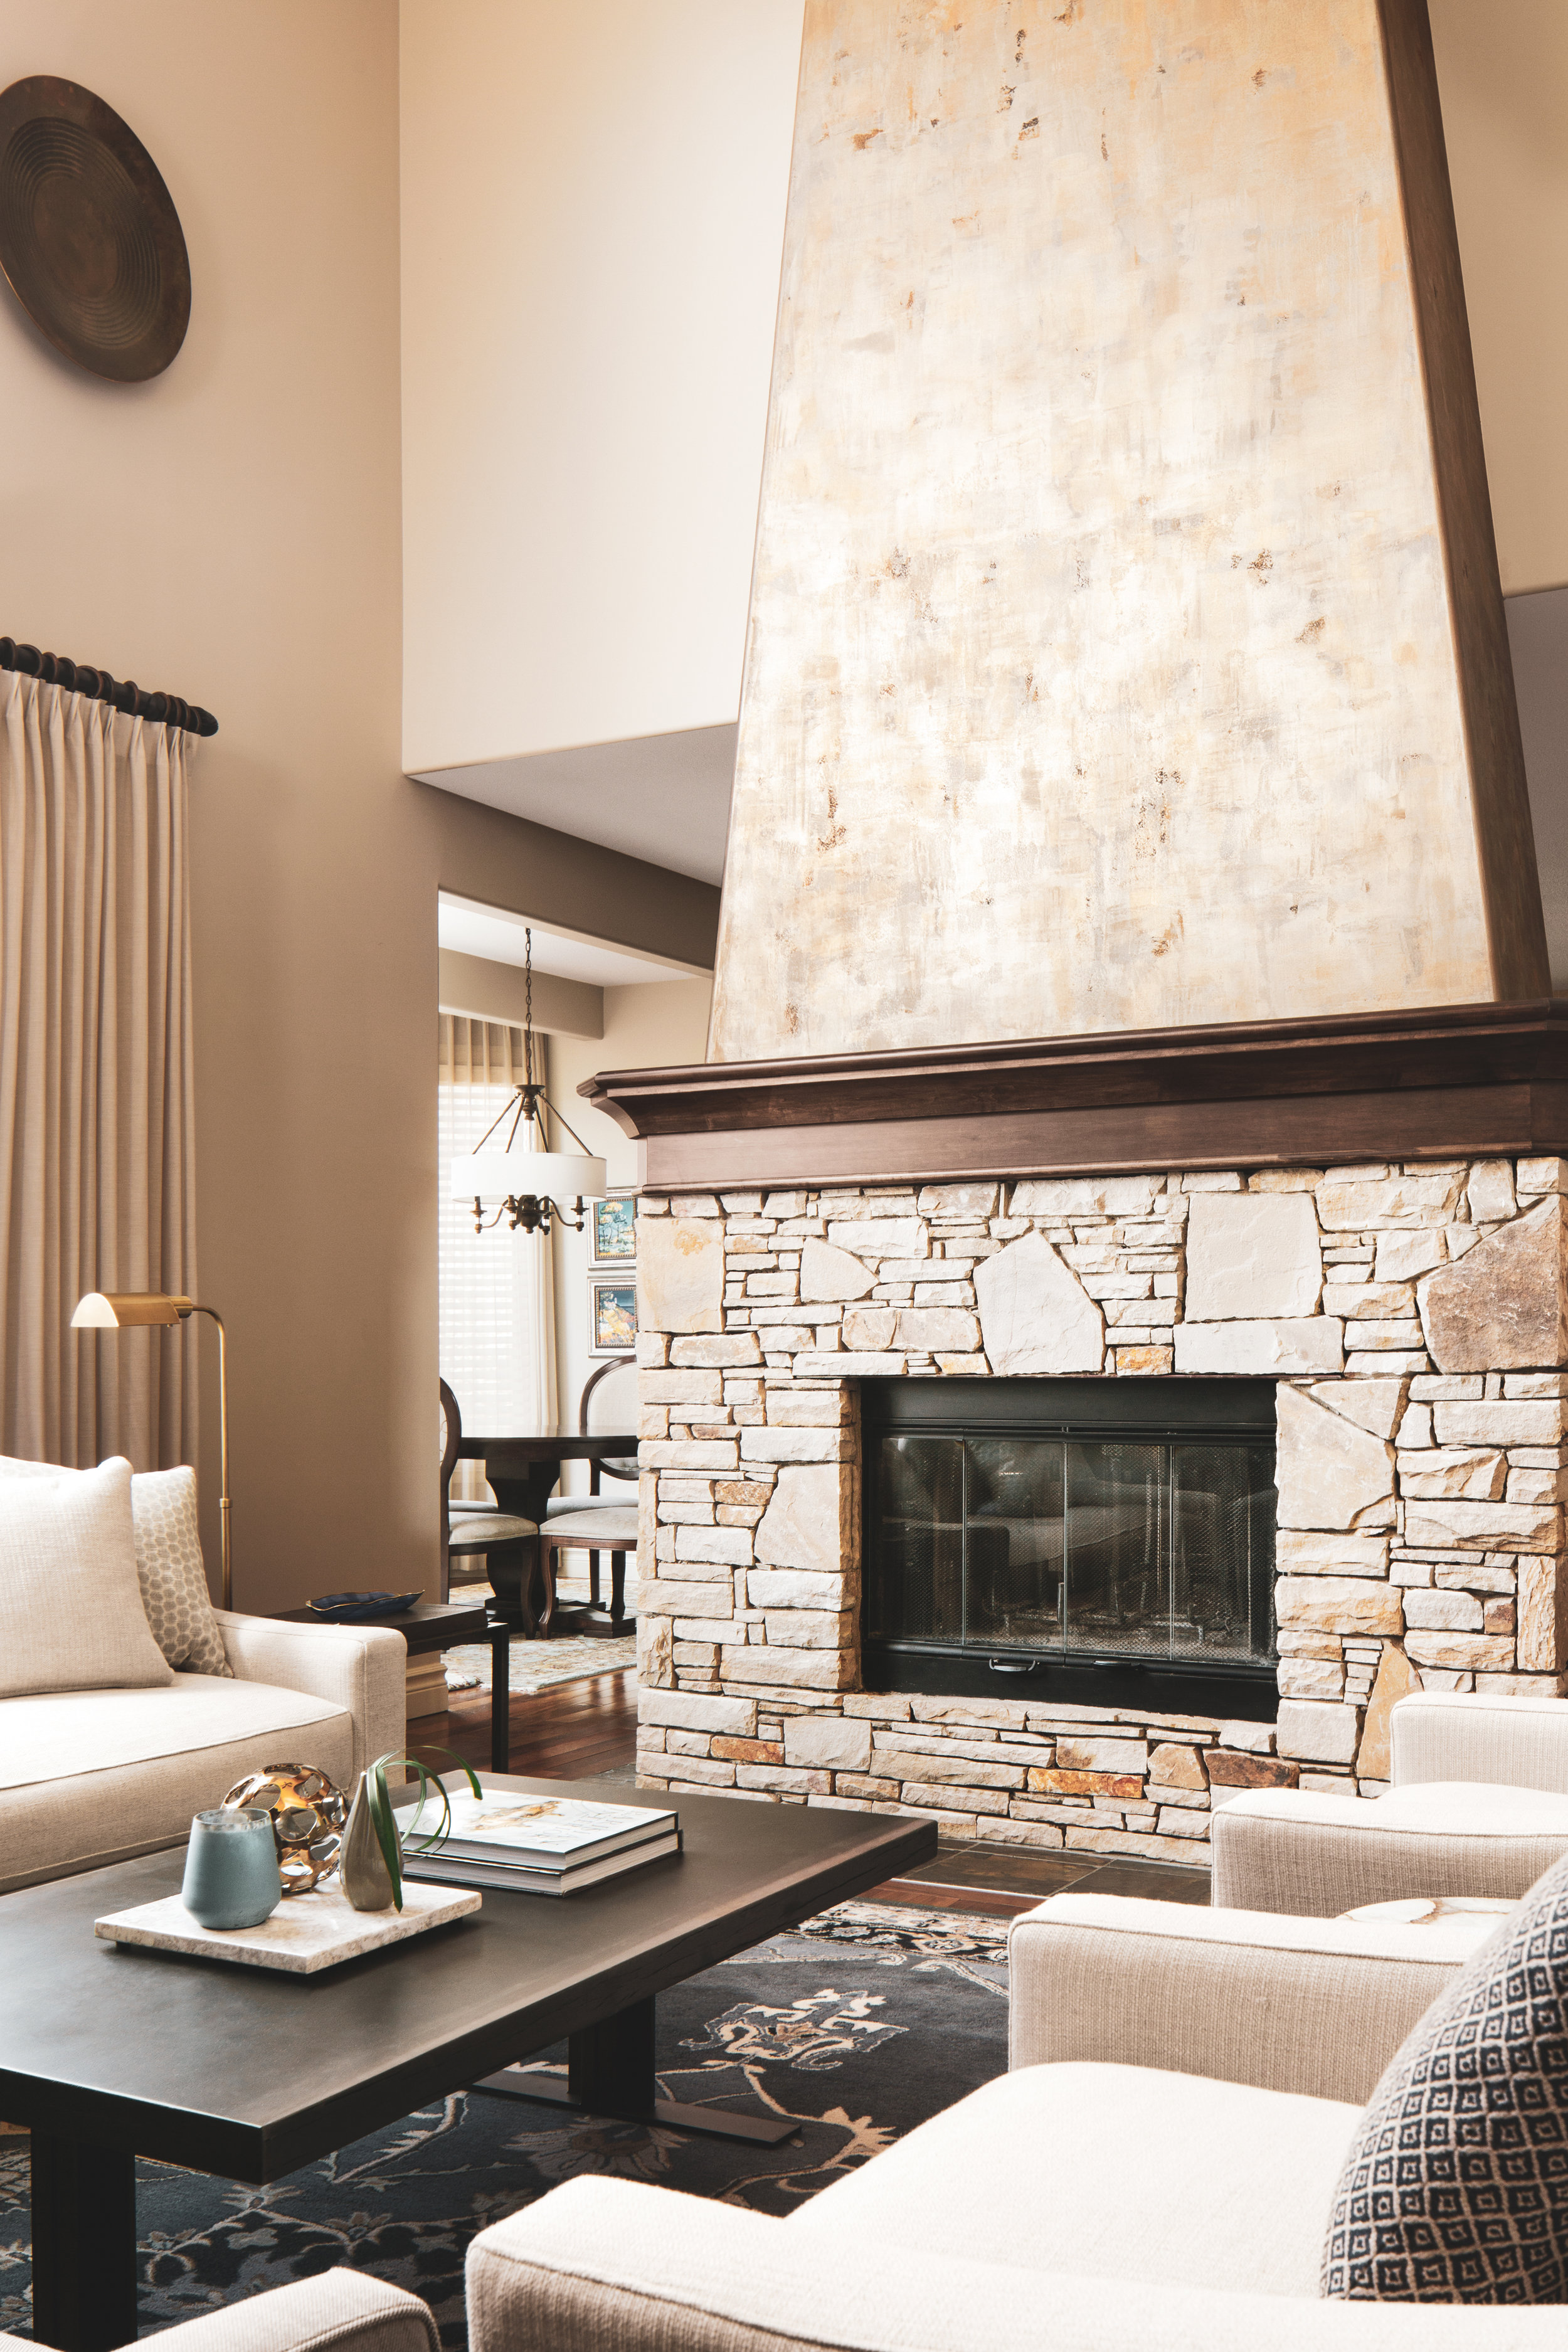 SPRINGBANK Residence - We were brought in to update the decor and furnishings of this custom home build in a more traditional french country style.The finished spaces needed to be ready for entertaining guests and durable enough for a heard-wearing family of four.